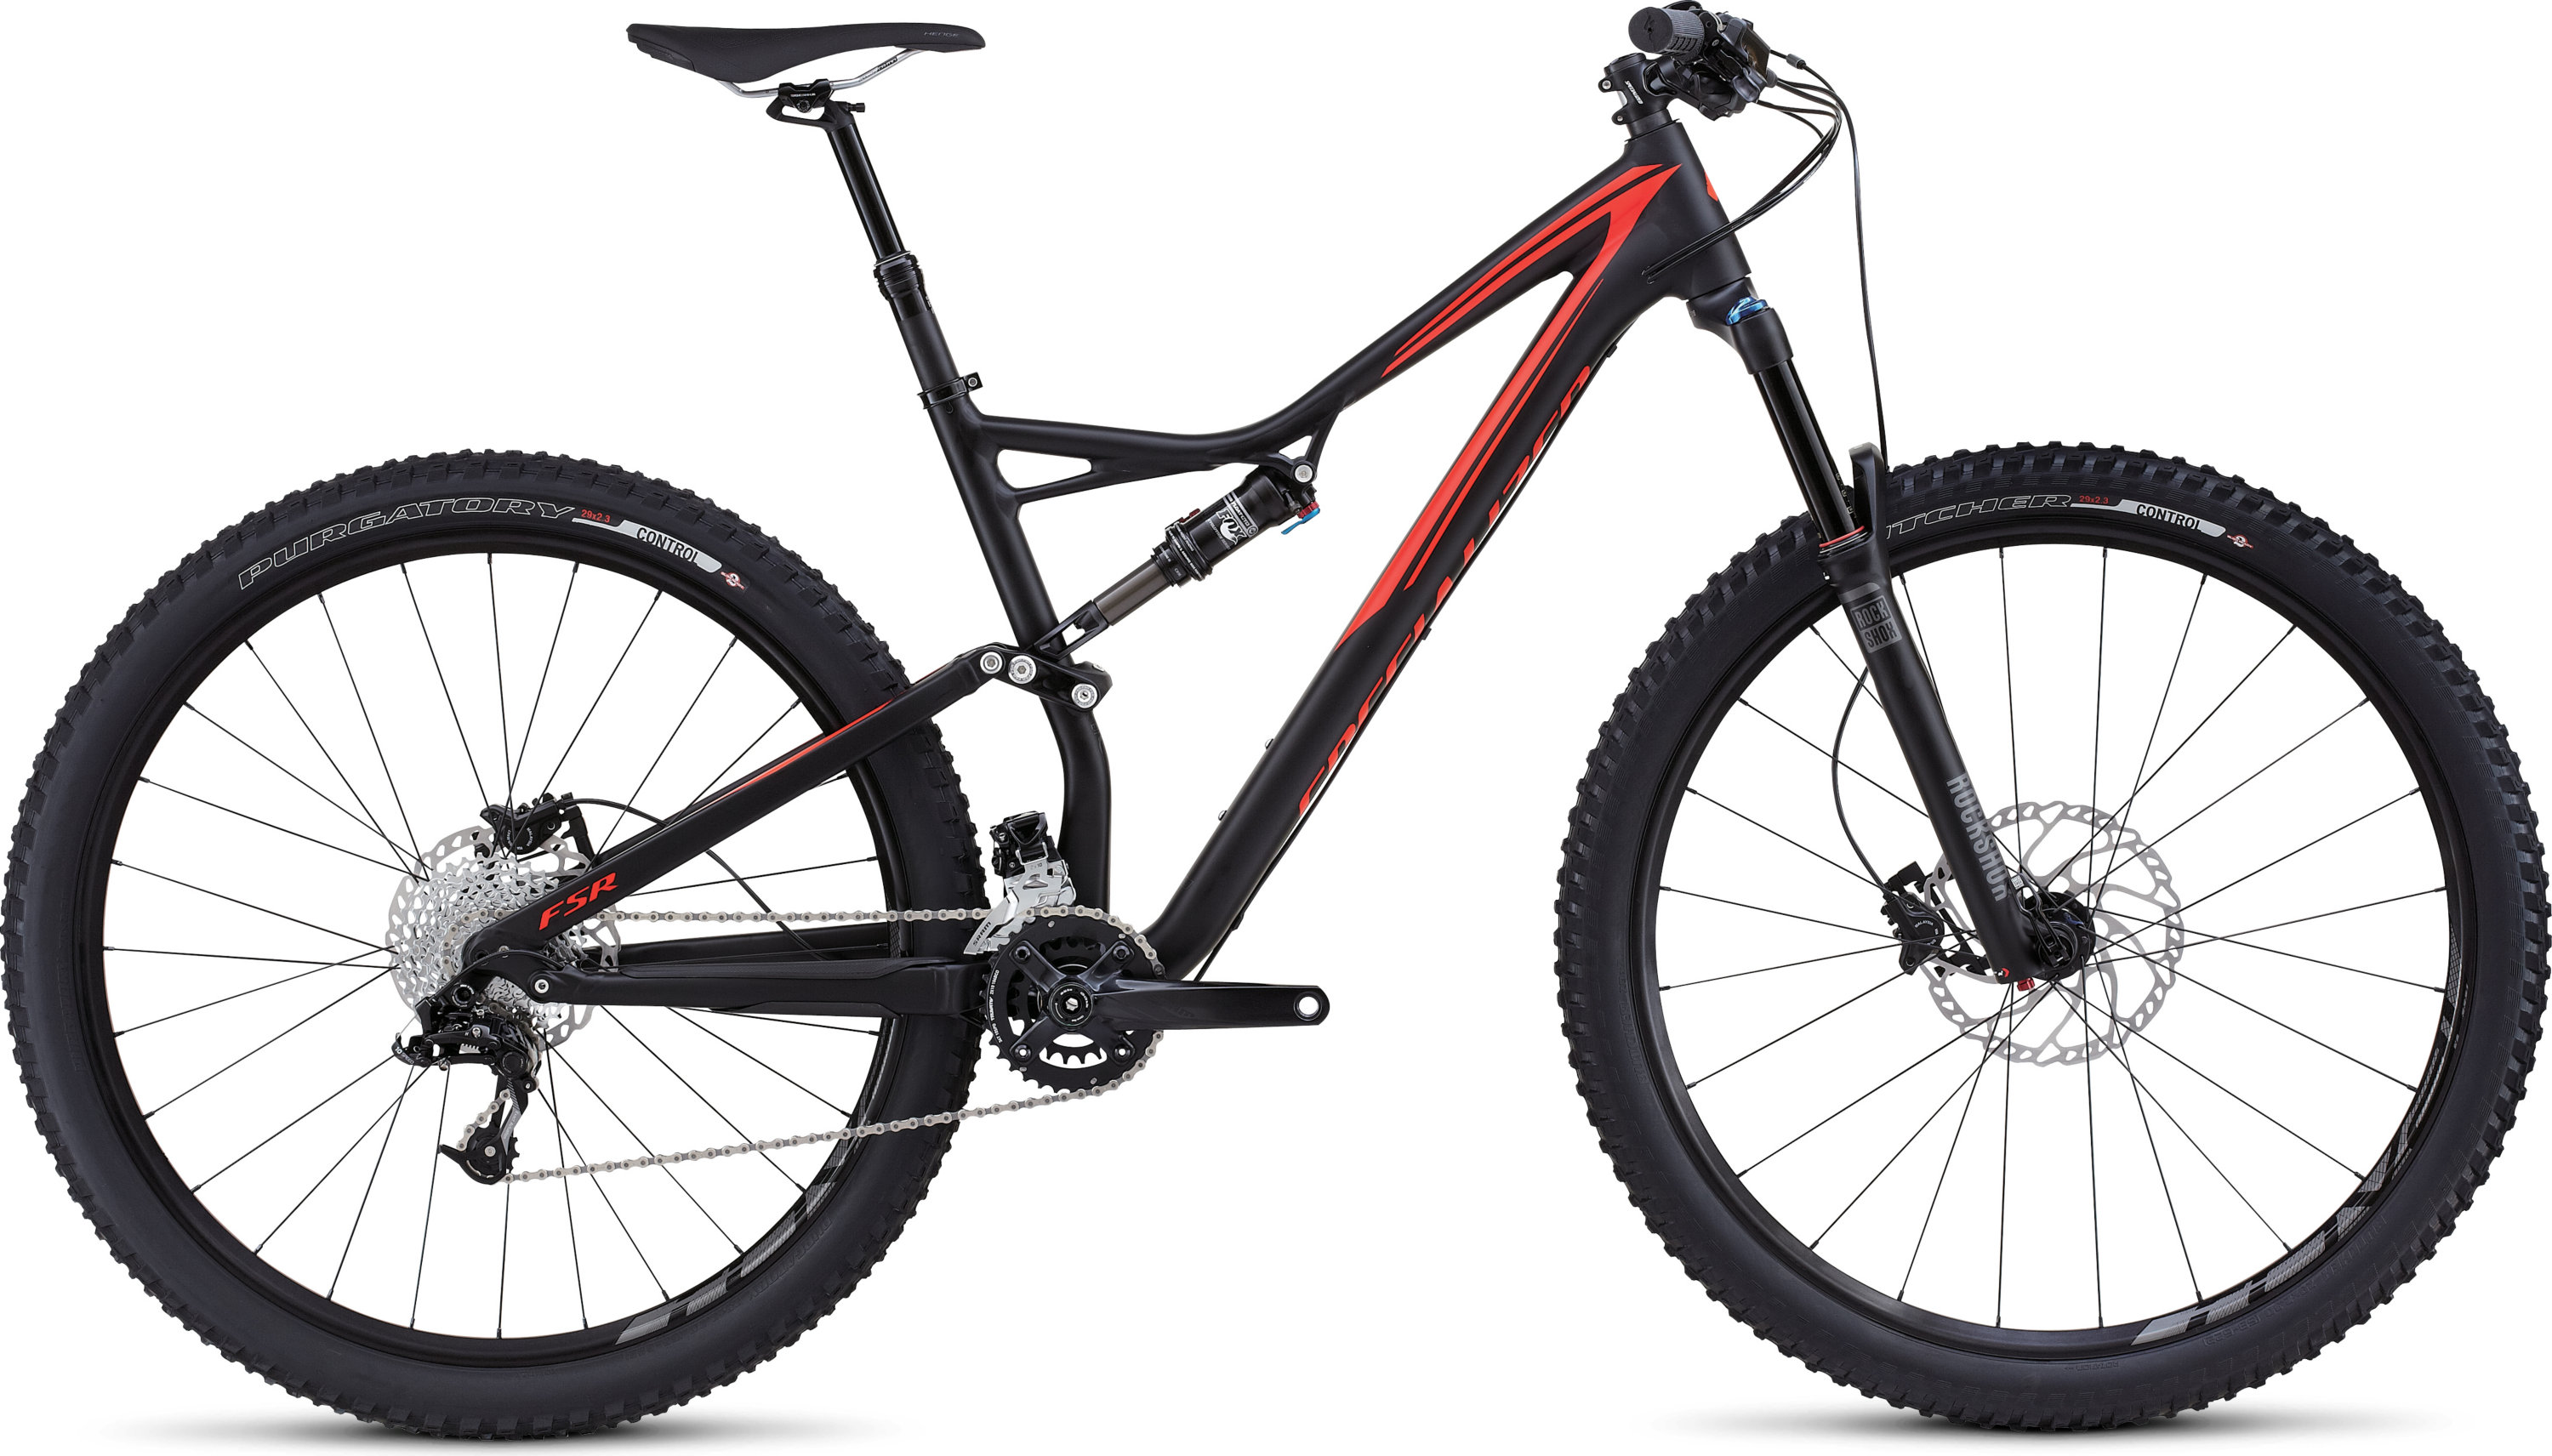 SPECIALIZED SJ FSR COMP 29 BLK/RKTRED M - Bike Maniac